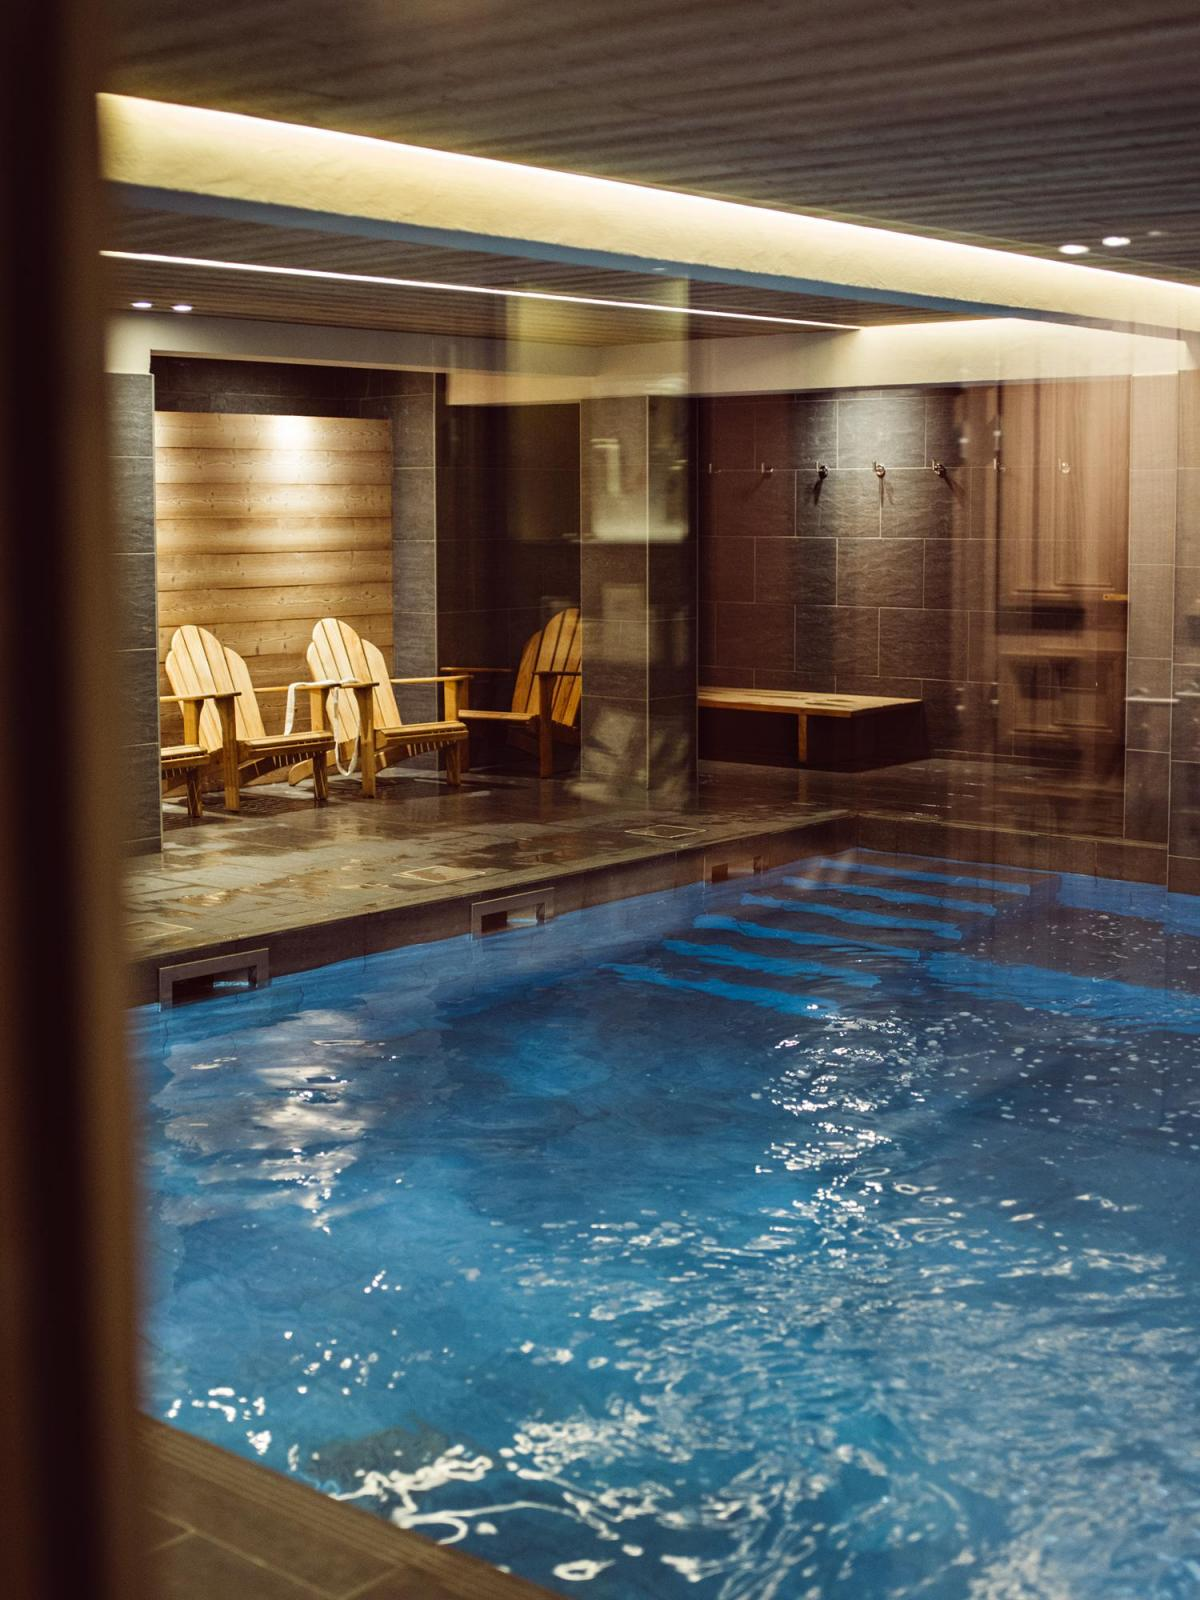 Chambre confort piste 2 personnes val thorens alpes for Piscine val thorens